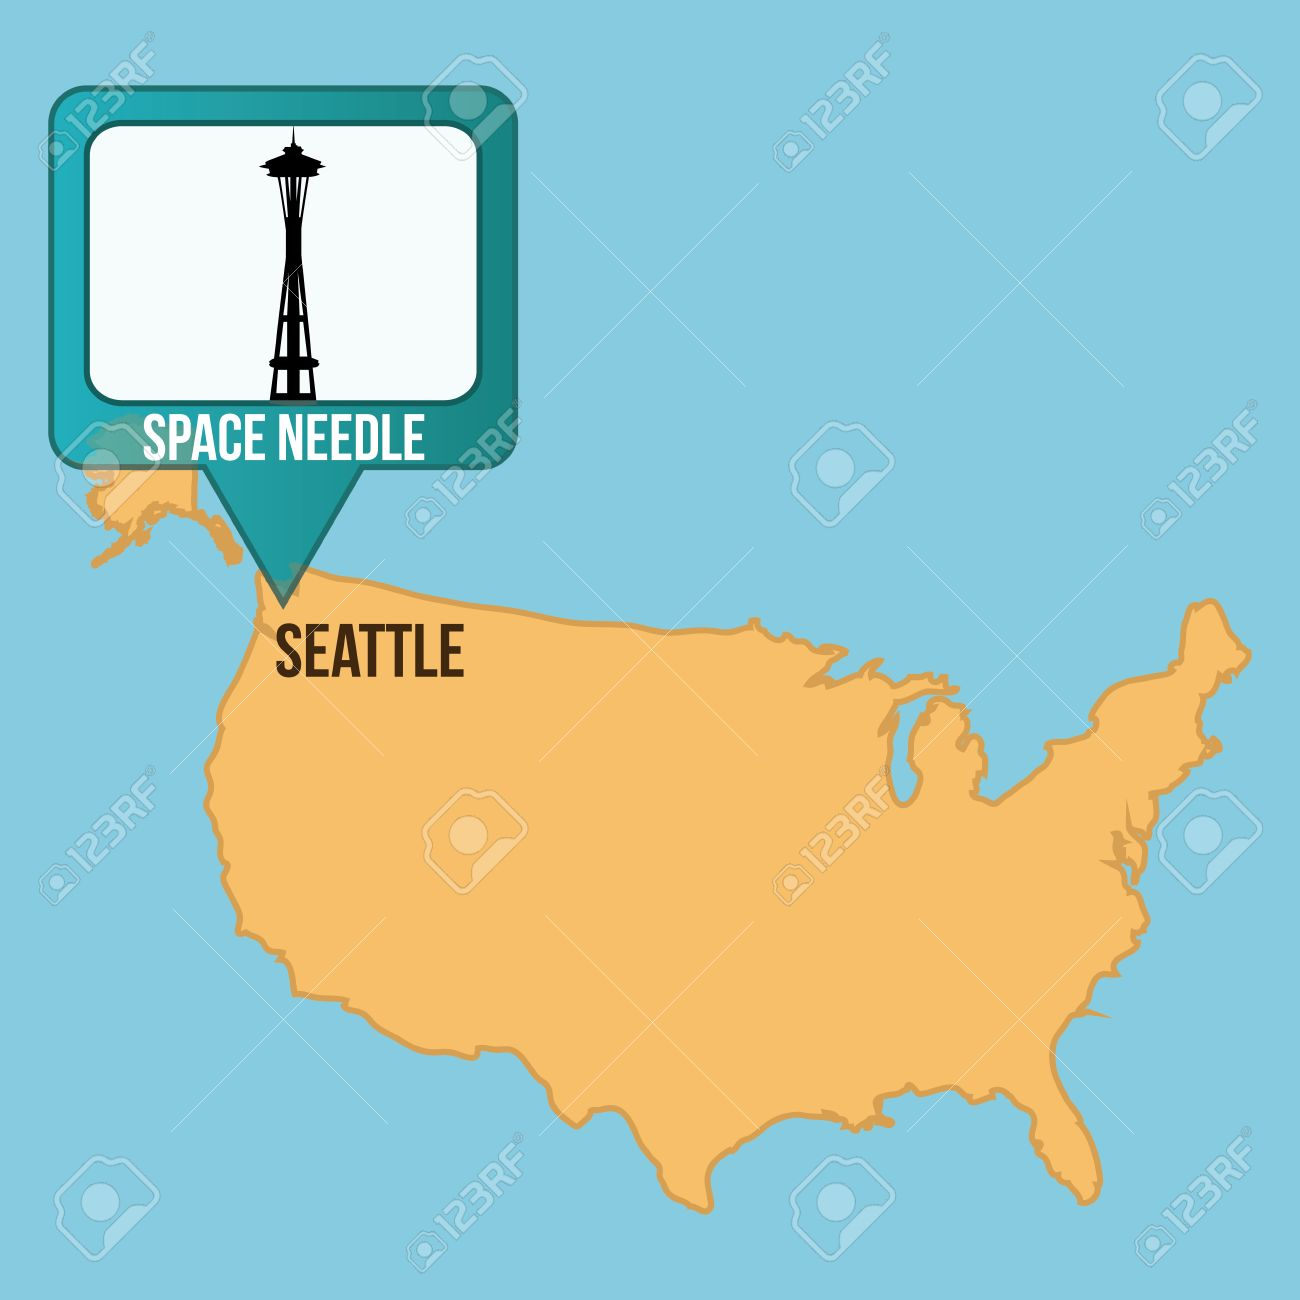 US Department Of Labor Office Of Workers Compensation SEATTLE - Map of us vector